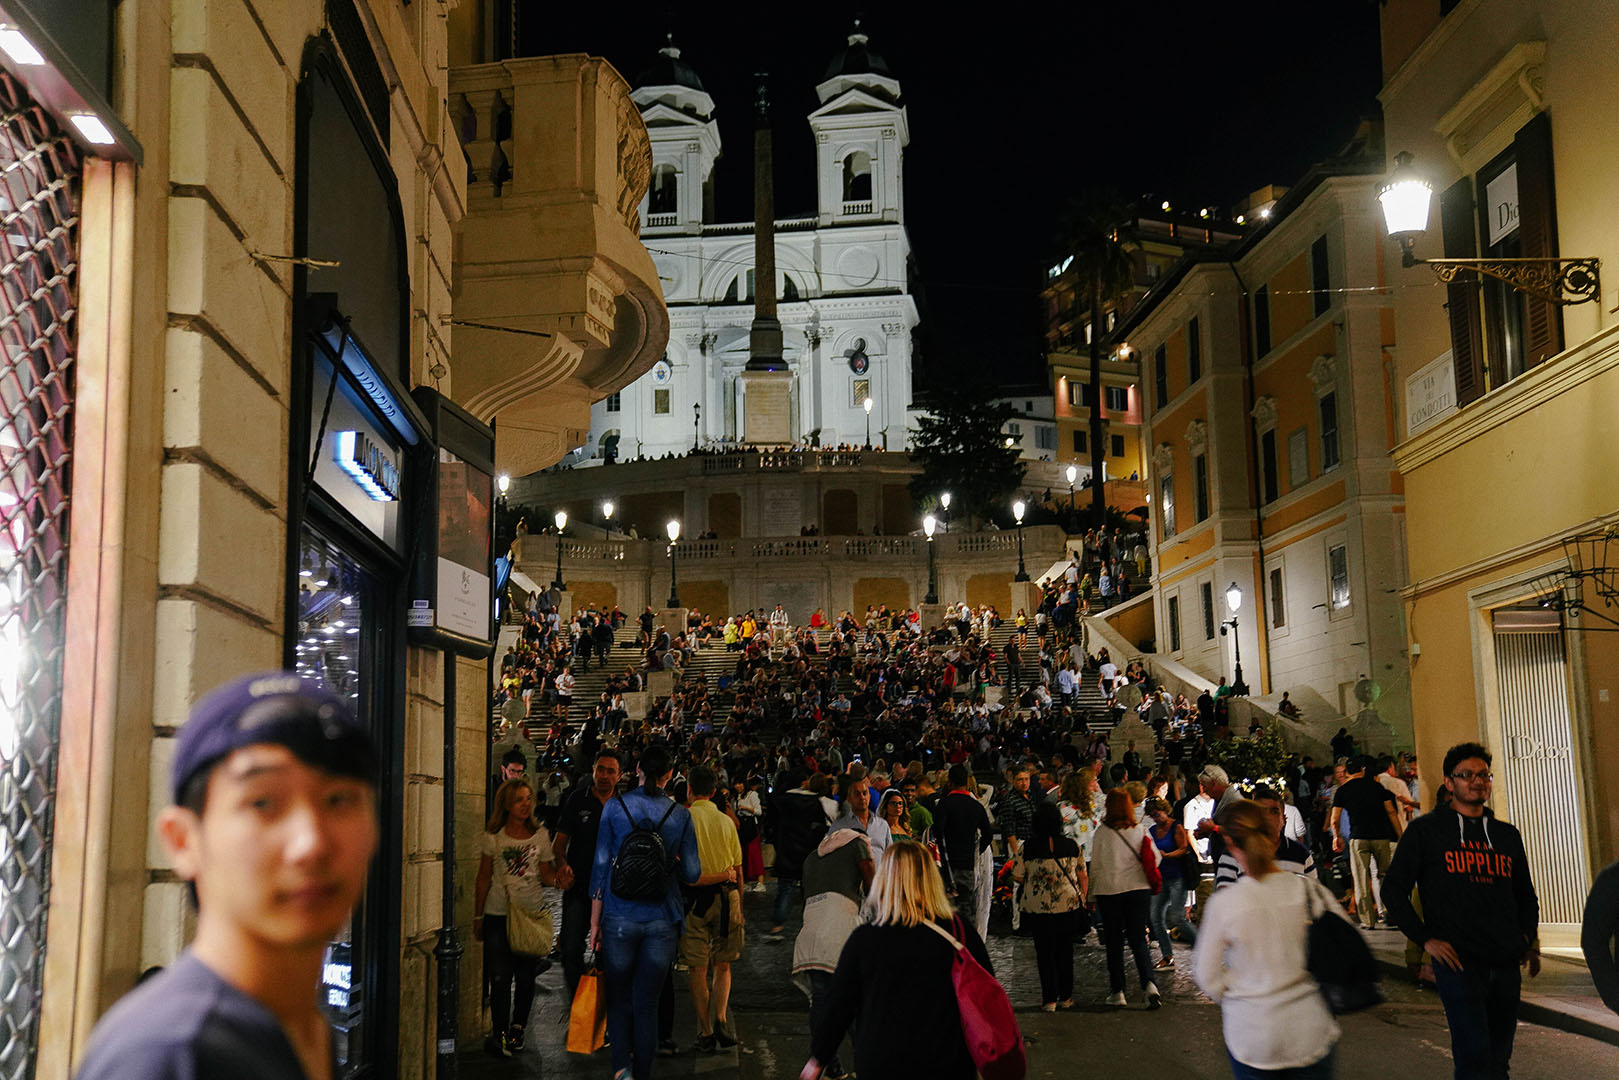 Spanish Steps at night.  Super Crowded!